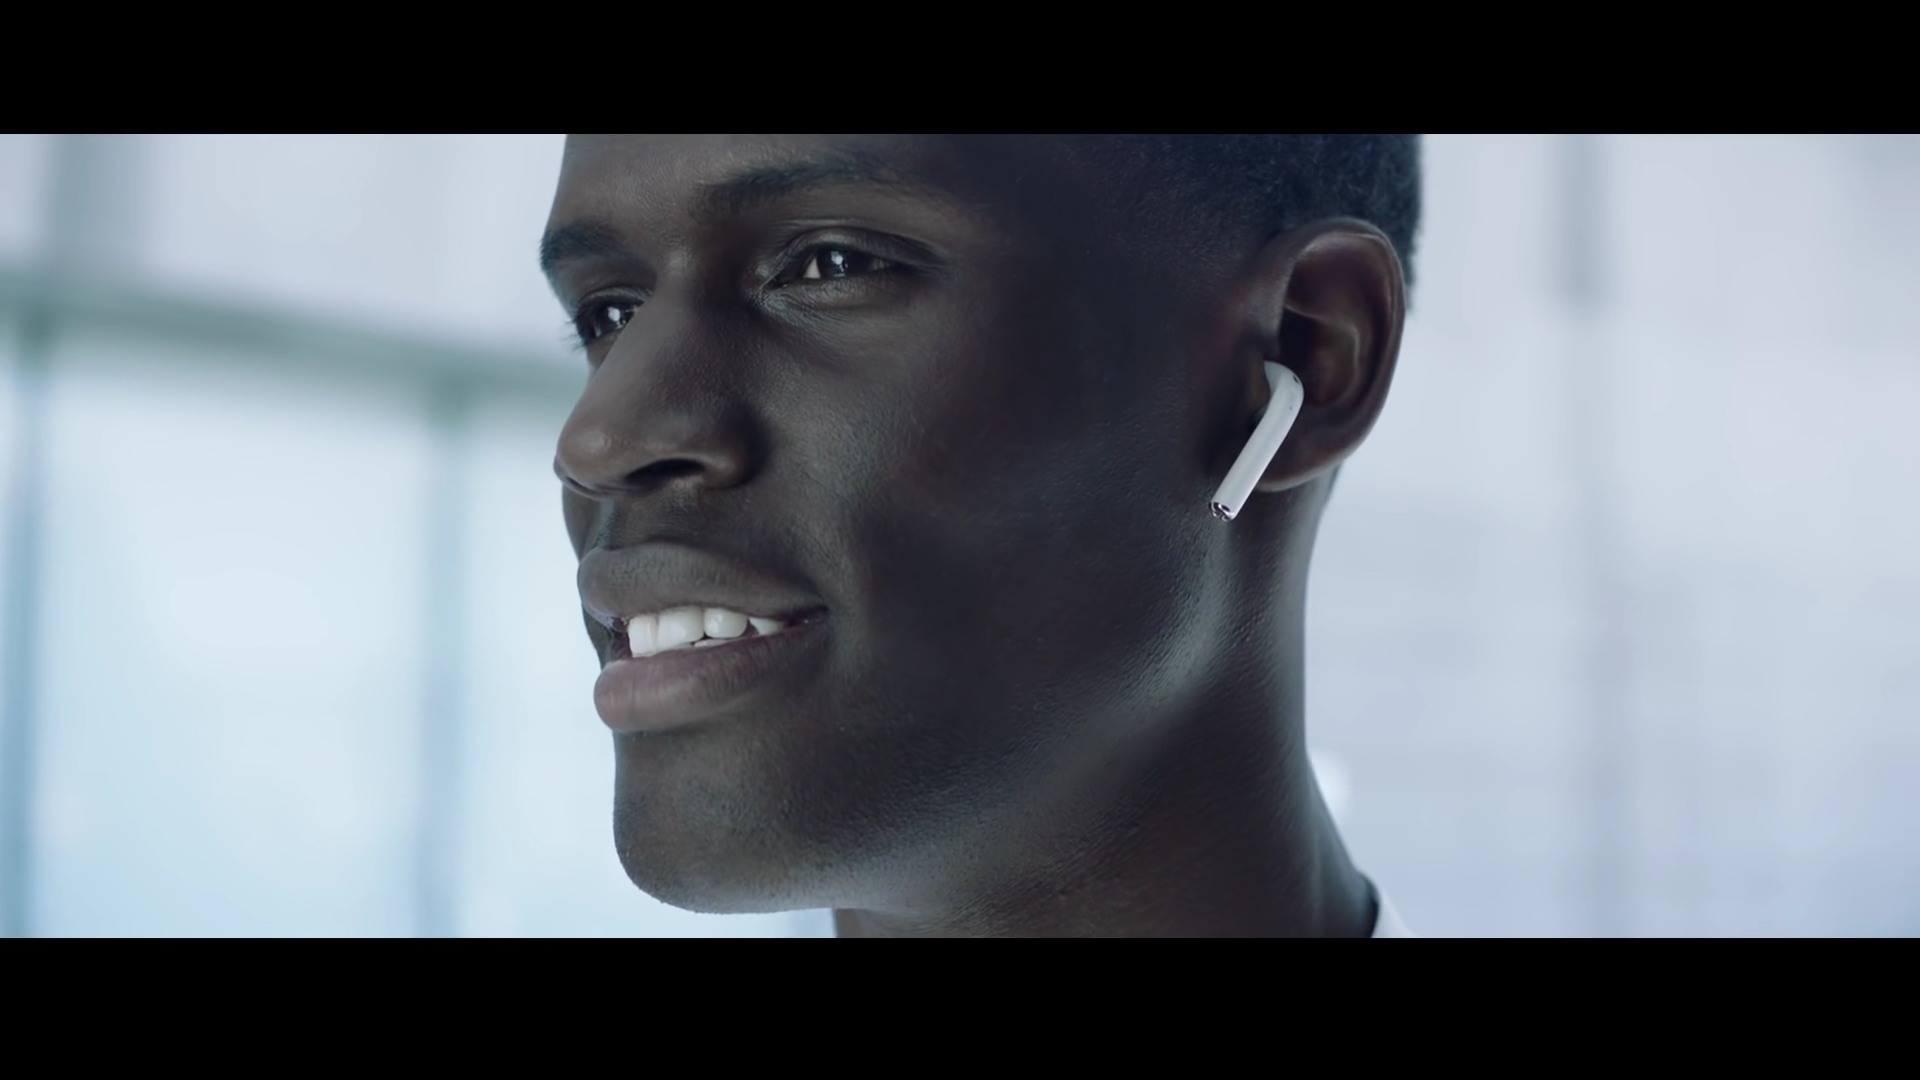 apple-airpods-youtu-be-rdthx15sxiu